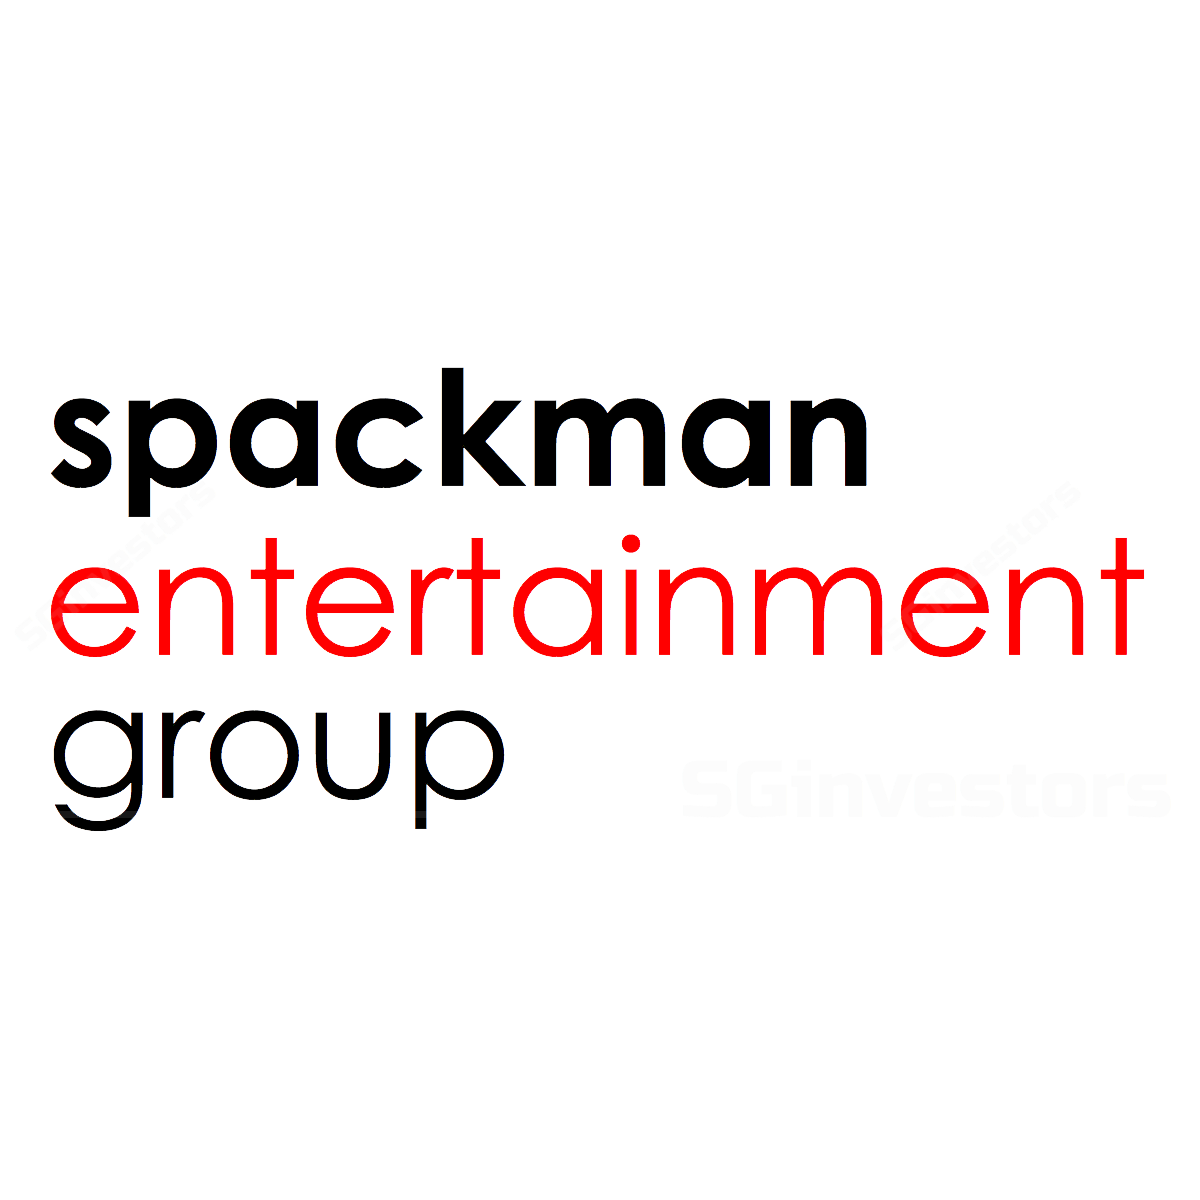 Spackman Entertainment Group - RHB Invest 2017-10-12: Transforming Through Acquisitions